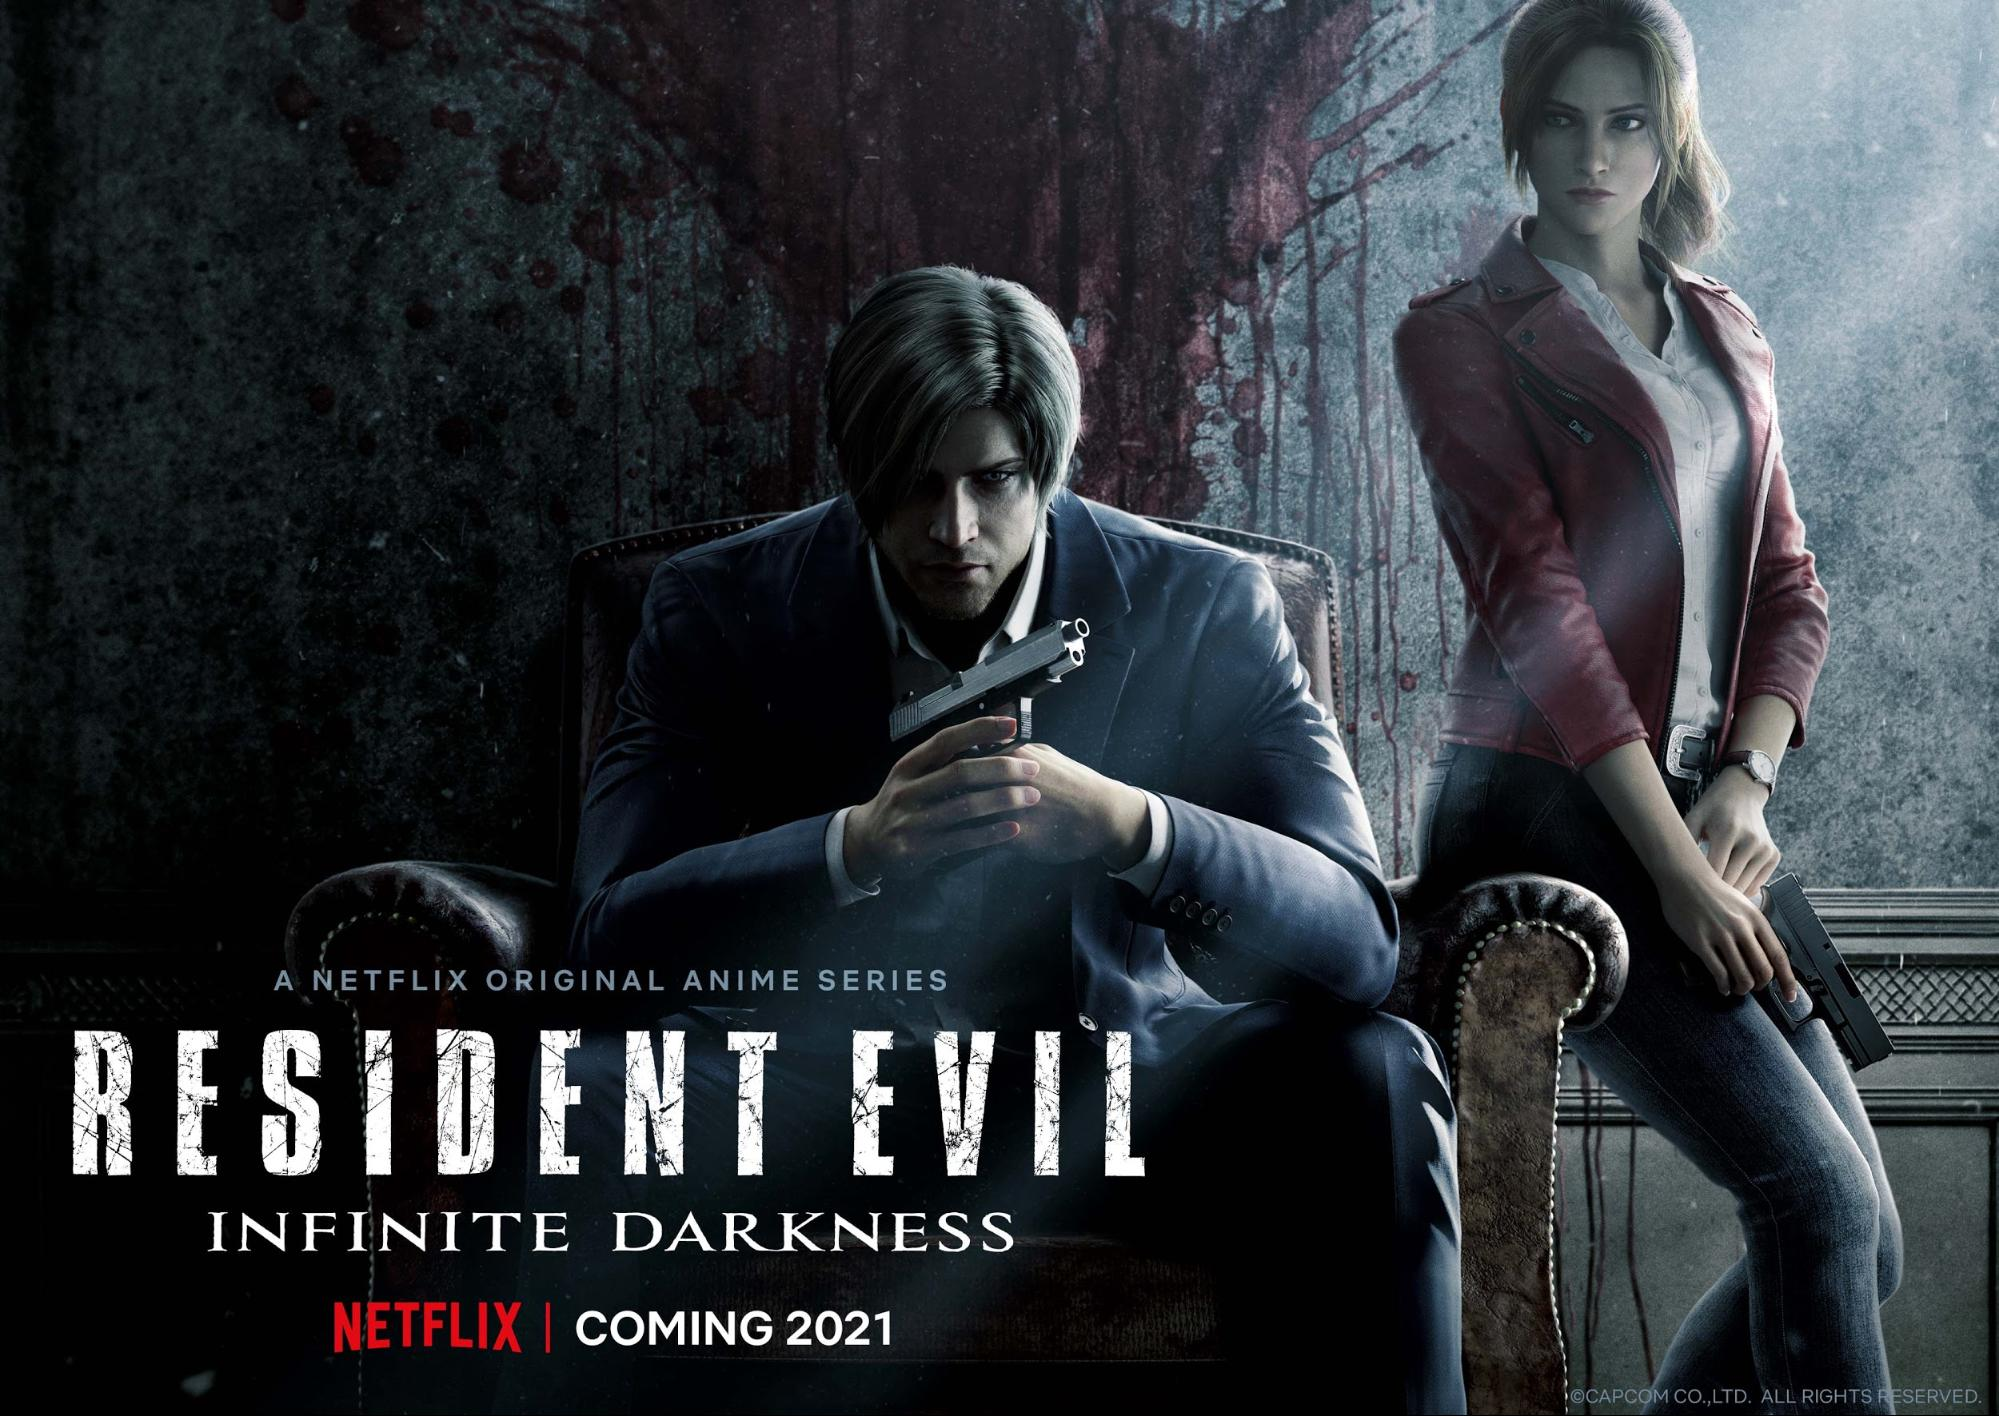 dives-into-the-spinoffs-story-of-resident-evil-infinite-darkness 1